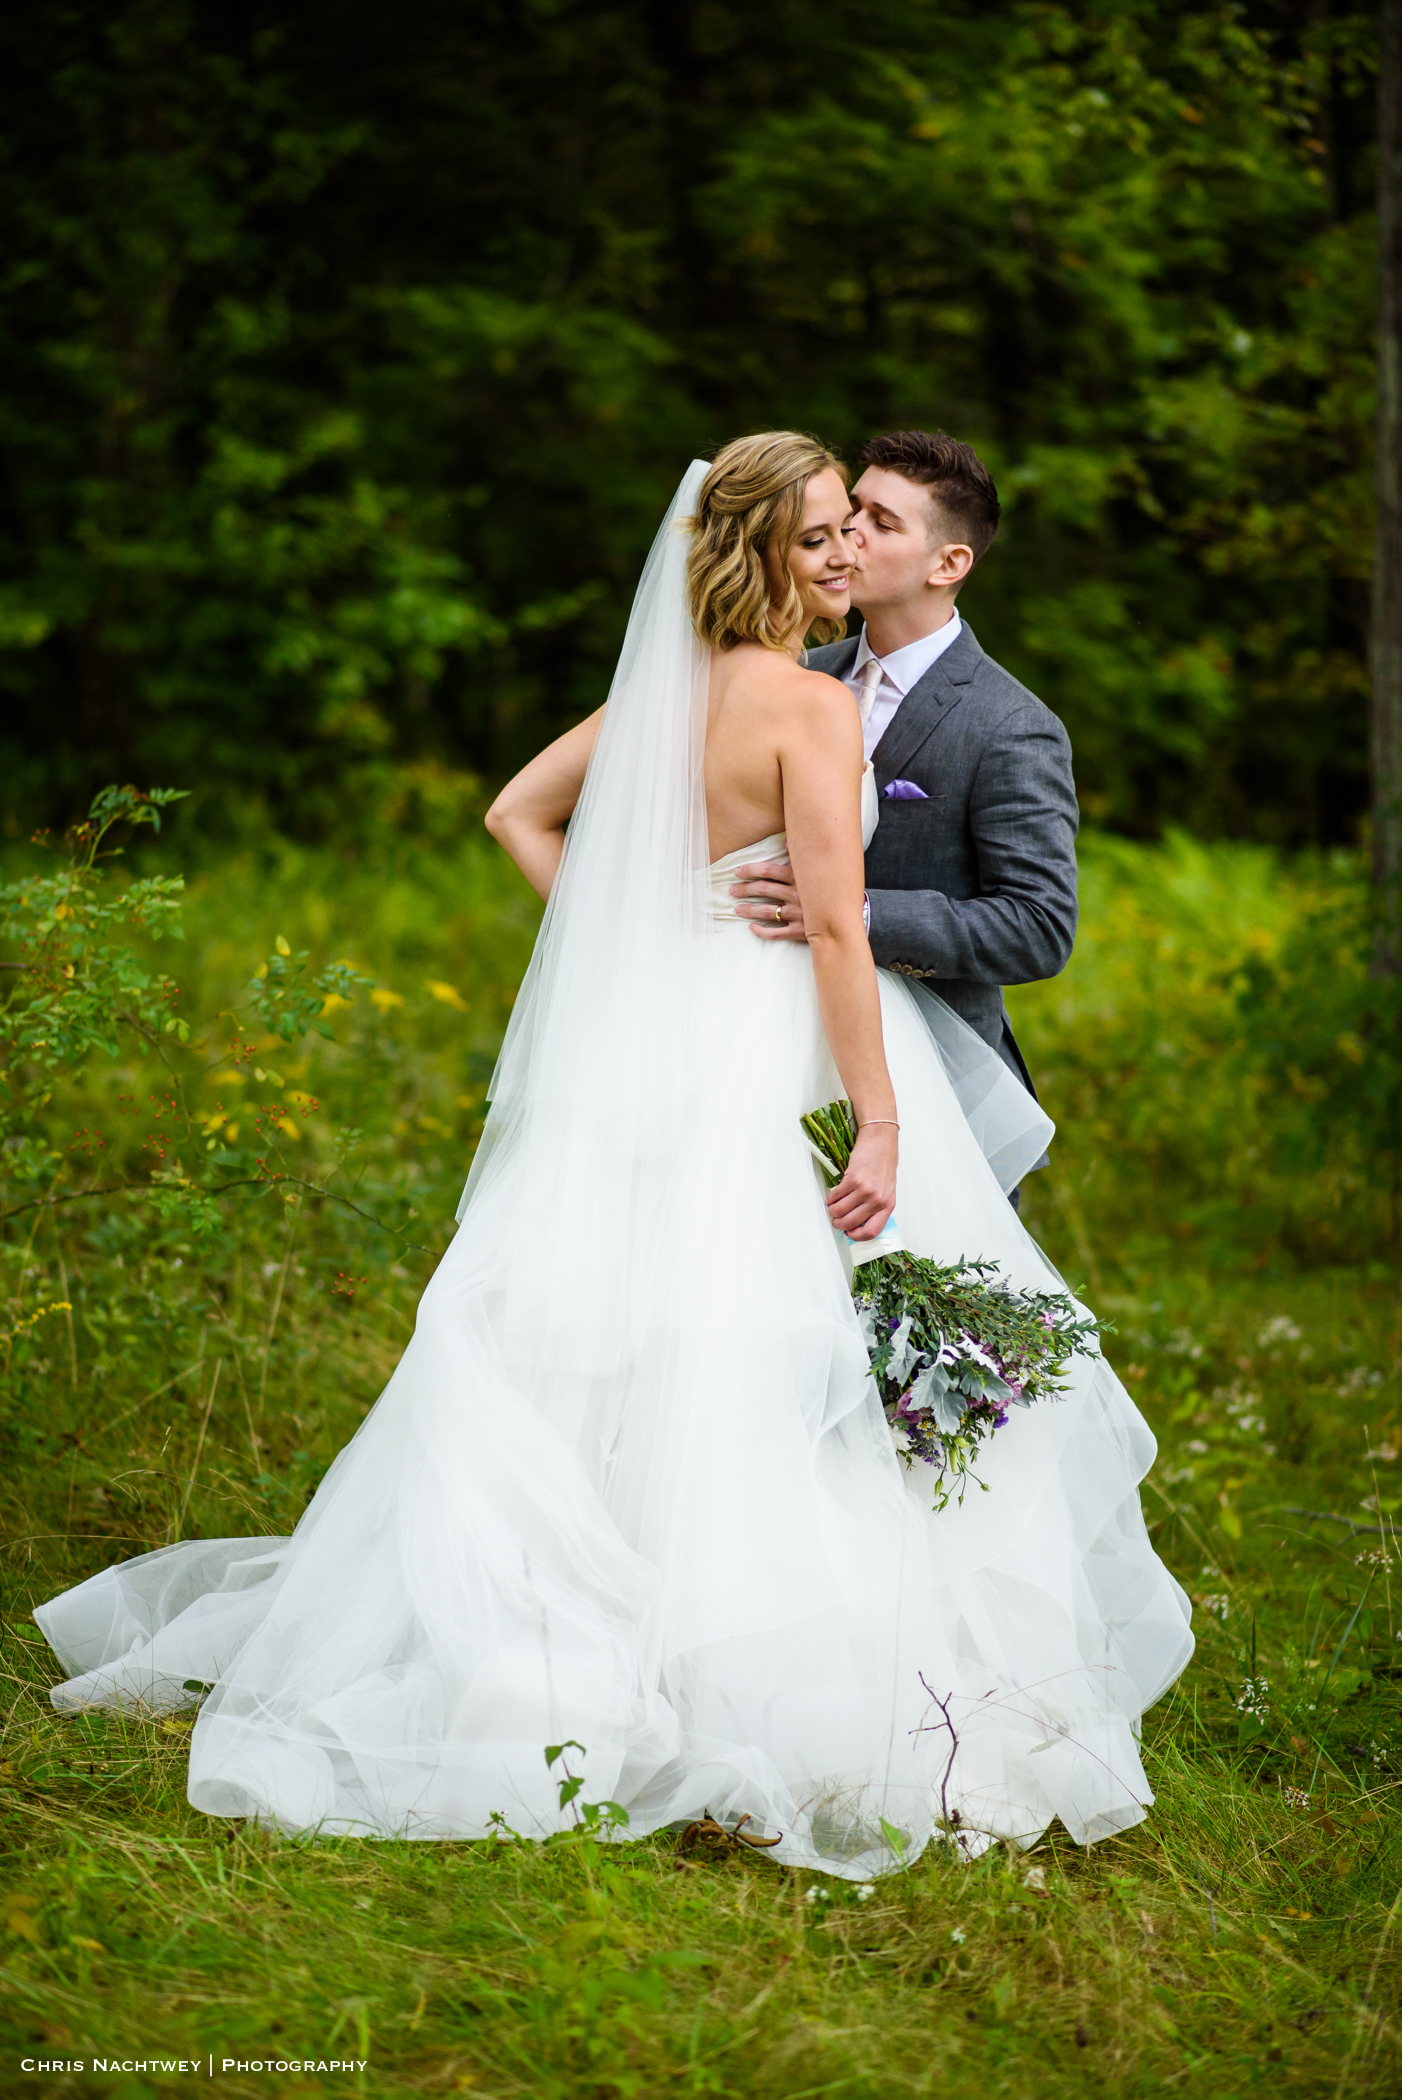 artistic-wedding-photographer-granby-connecticut-chris-nachtwey-photography-2018-33.jpg